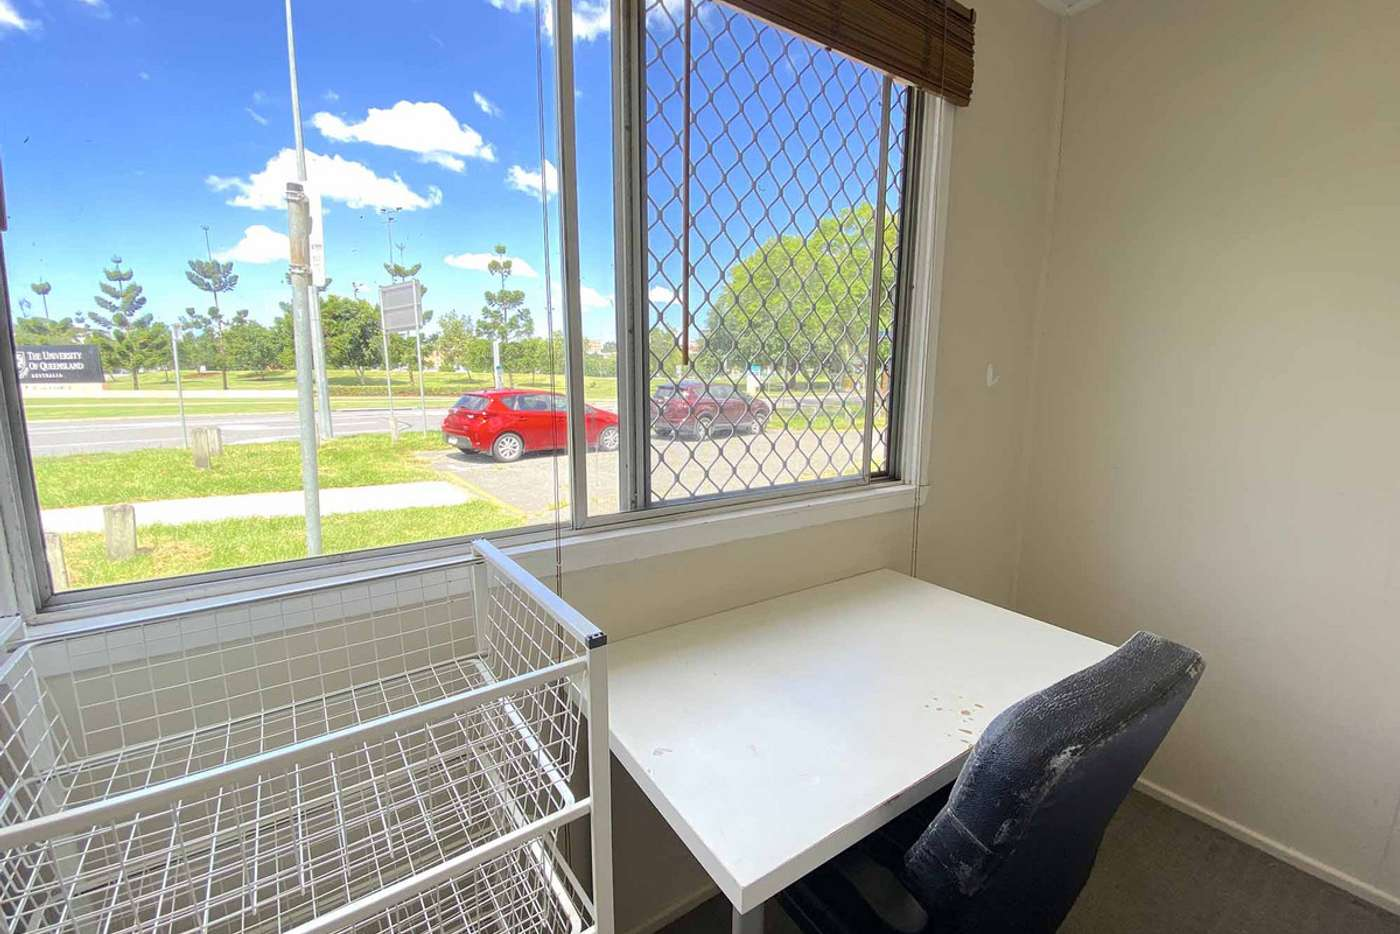 Seventh view of Homely house listing, 247 Sir Fred Schonell Drive, St Lucia QLD 4067